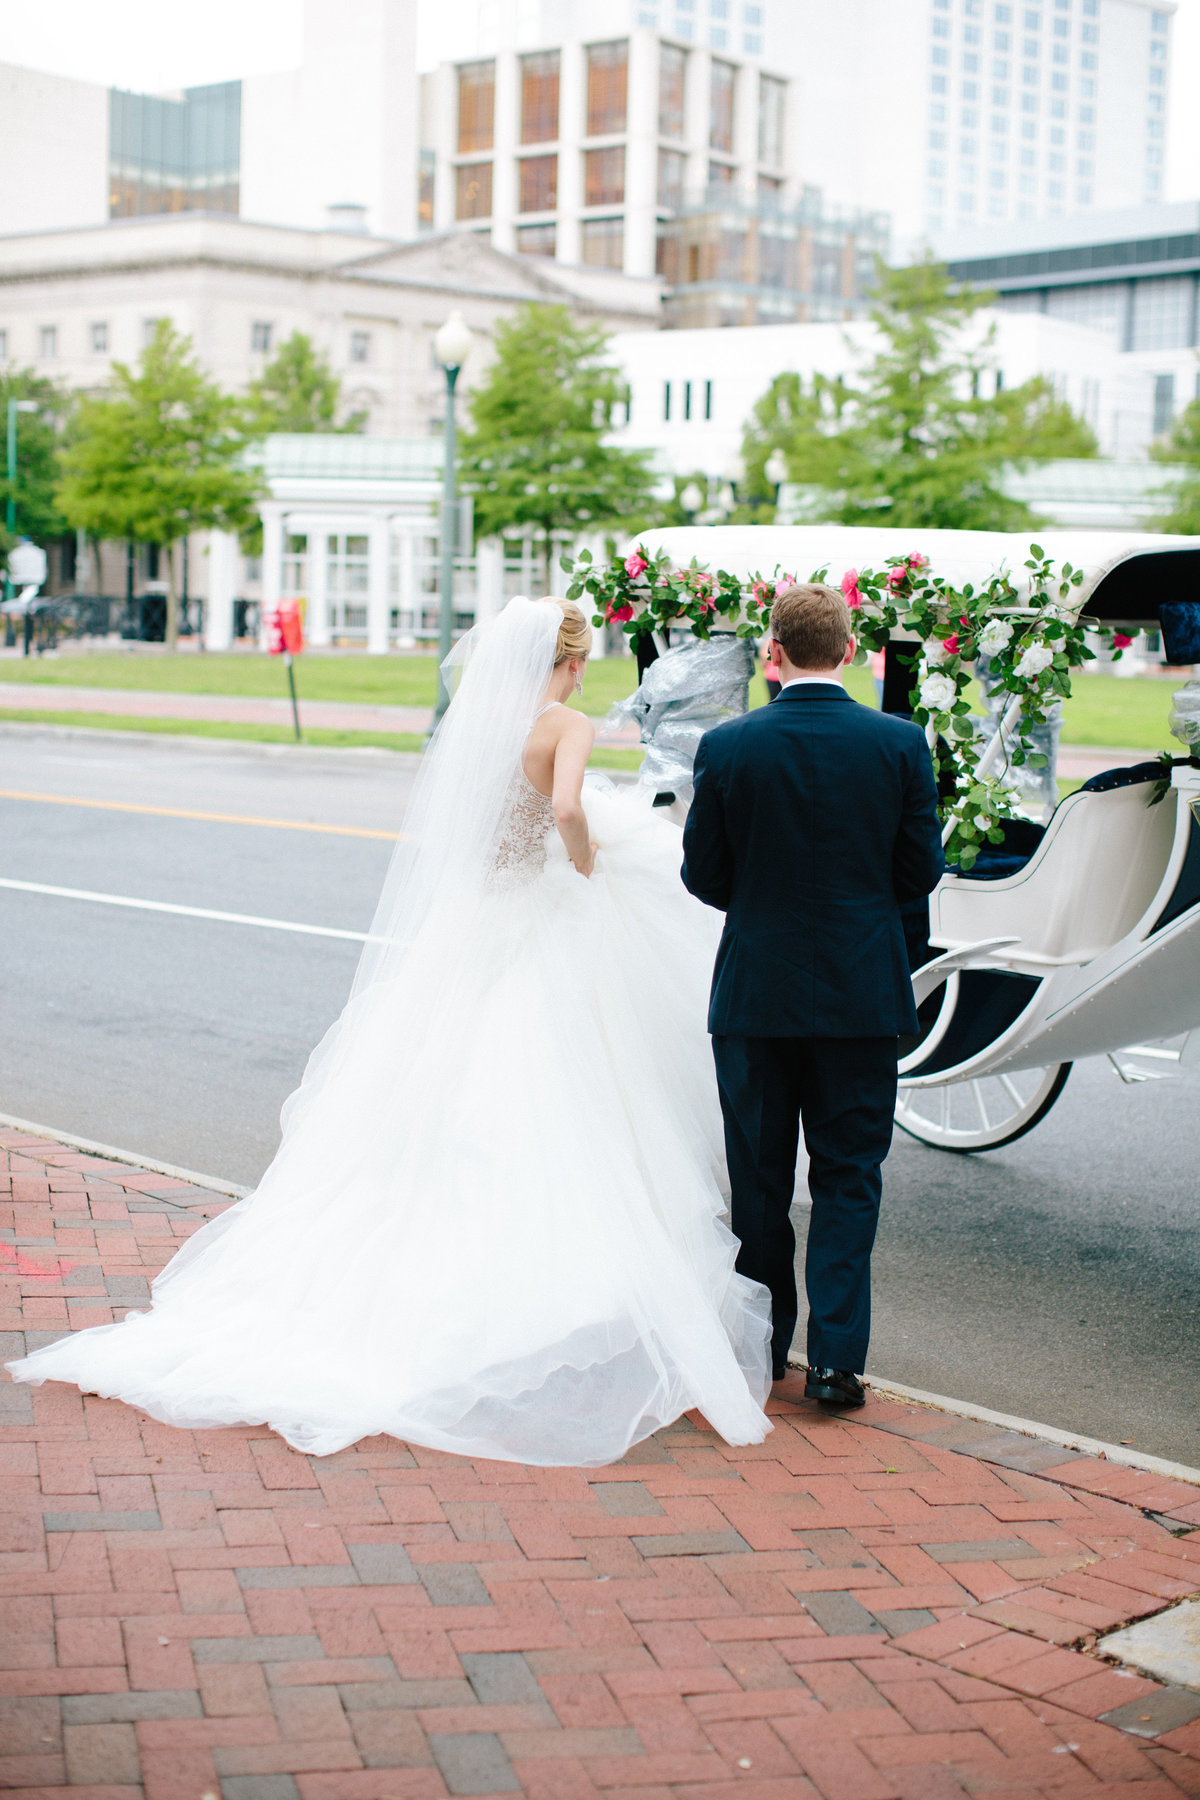 Heart's Content Events - Virginia Maryland DC Wedding and Event Planner - Marriage Coach - Adrienne Rolon - Photo15